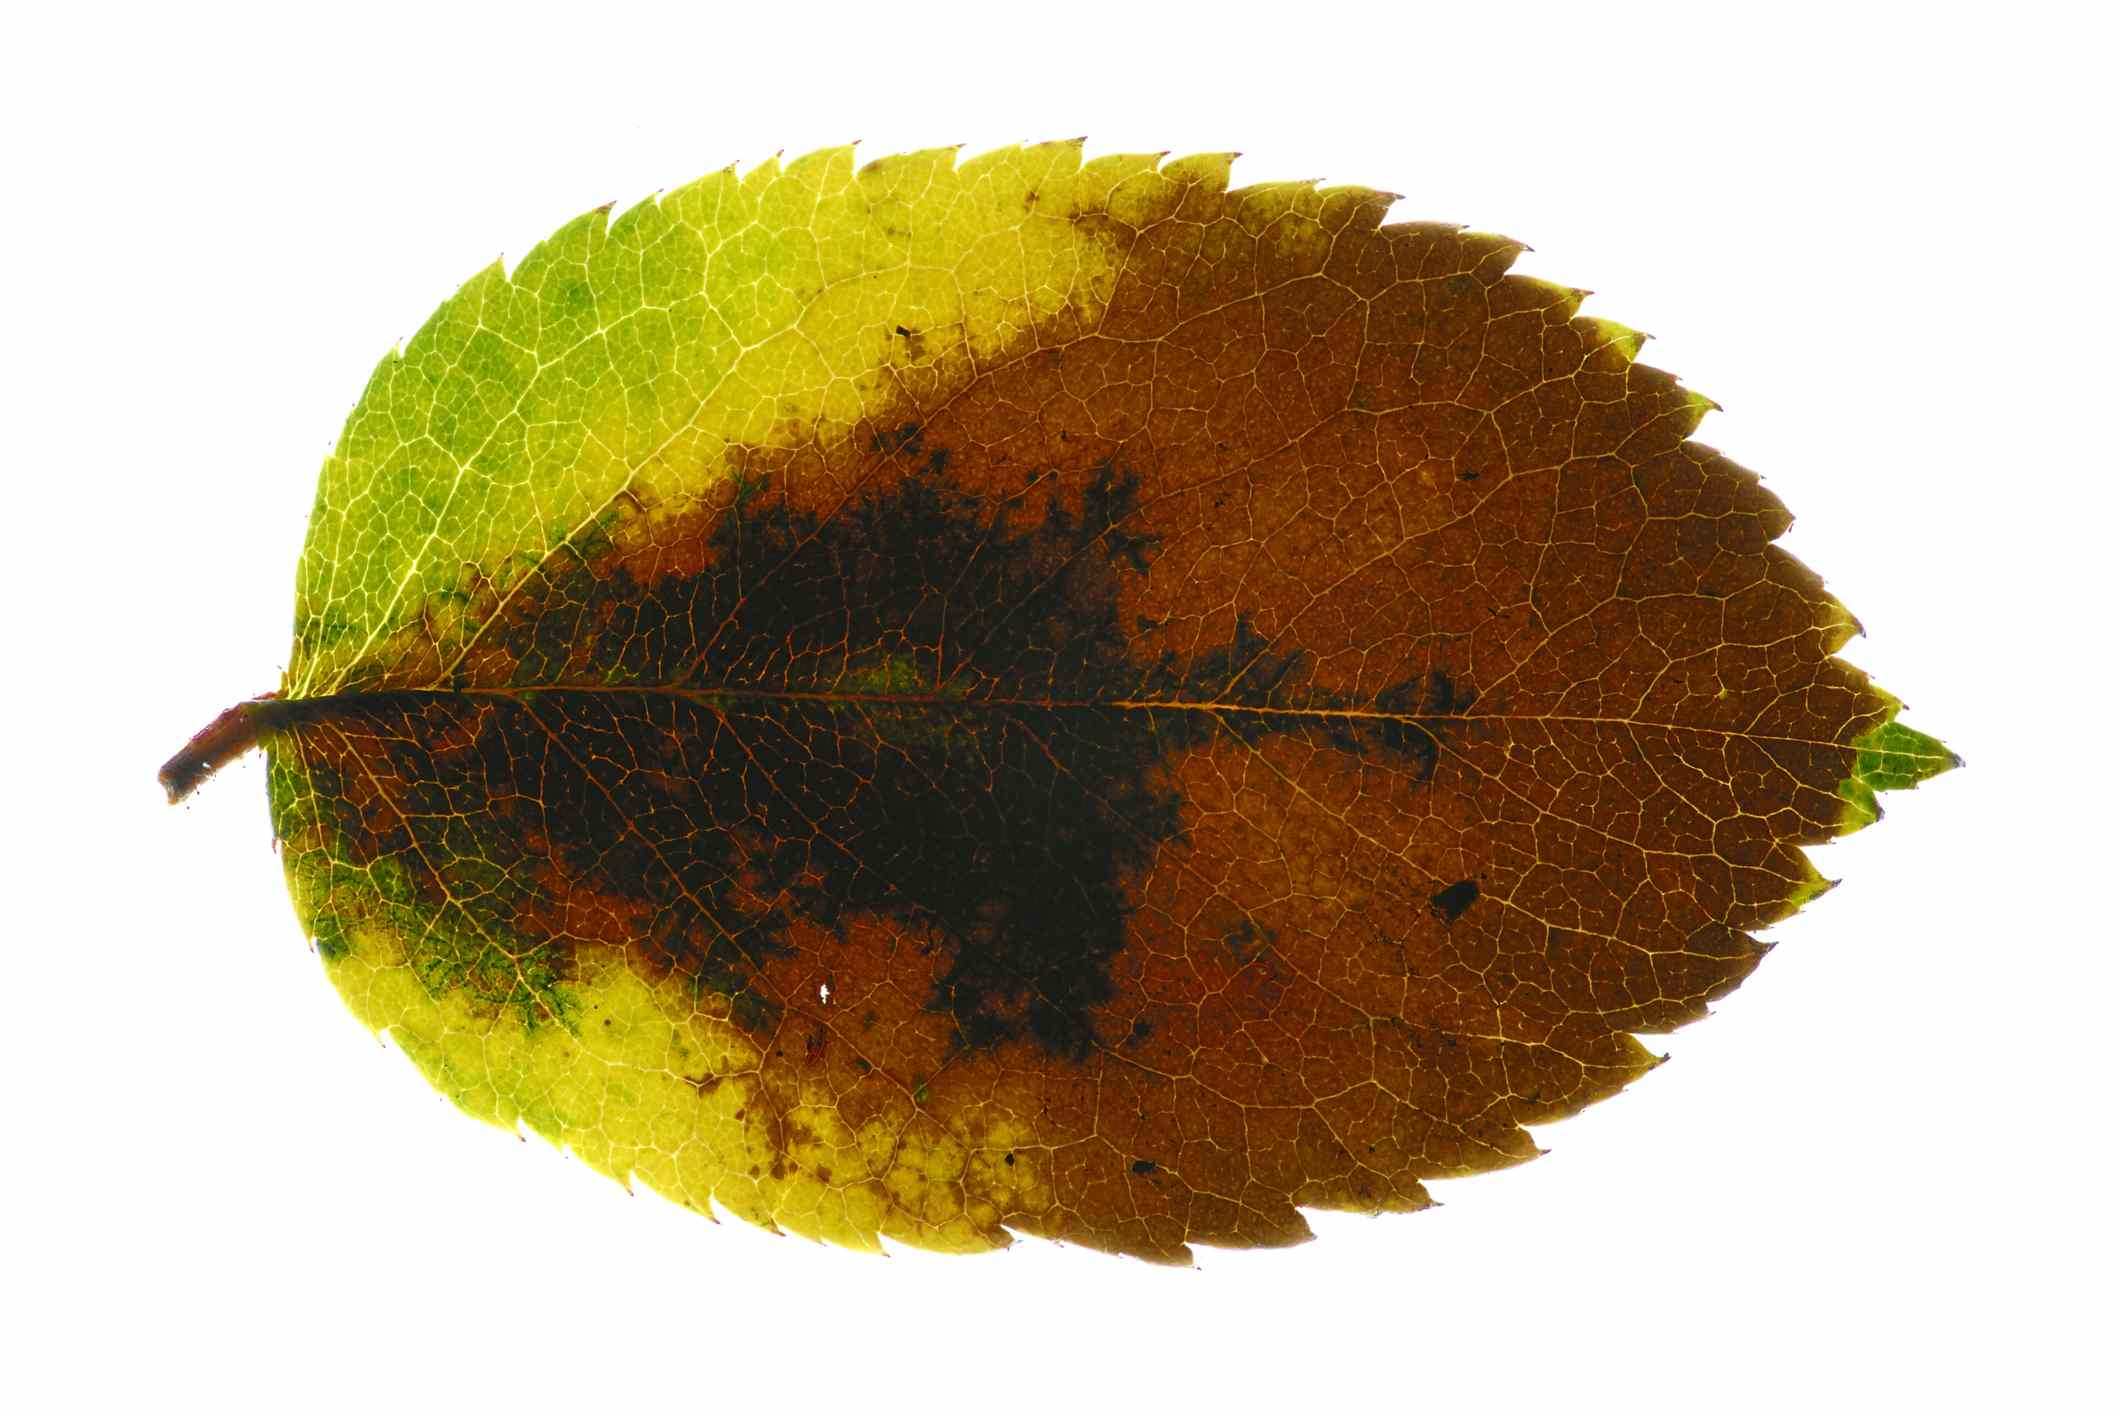 Rose leaf with advanced anthracnose